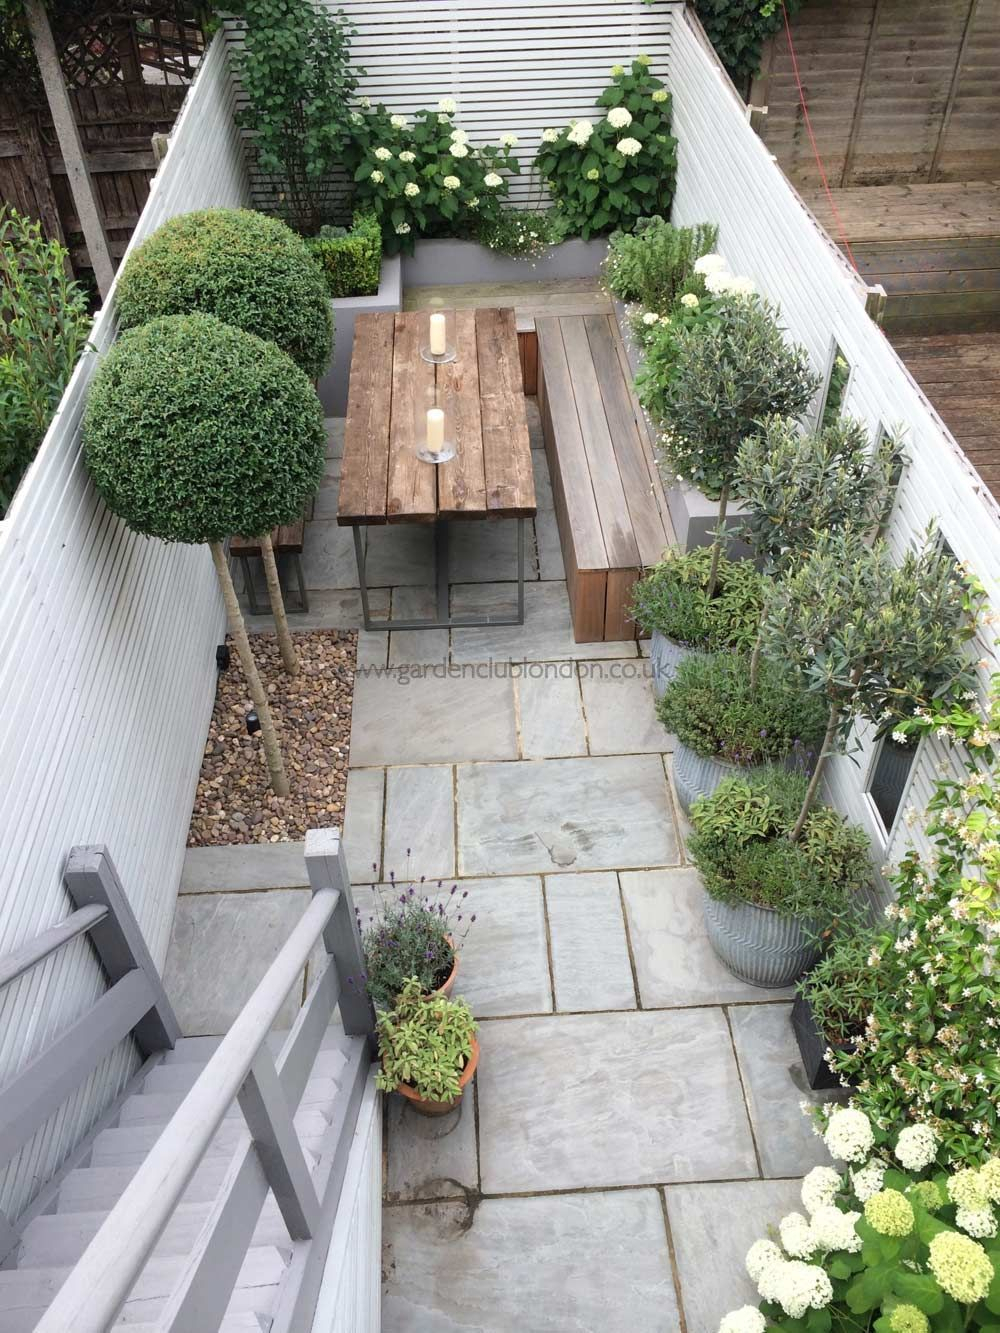 22 Nice Garden Ideas For Small Garden Pinterest Inspirational intended for Beautiful Small Backyard Ideas